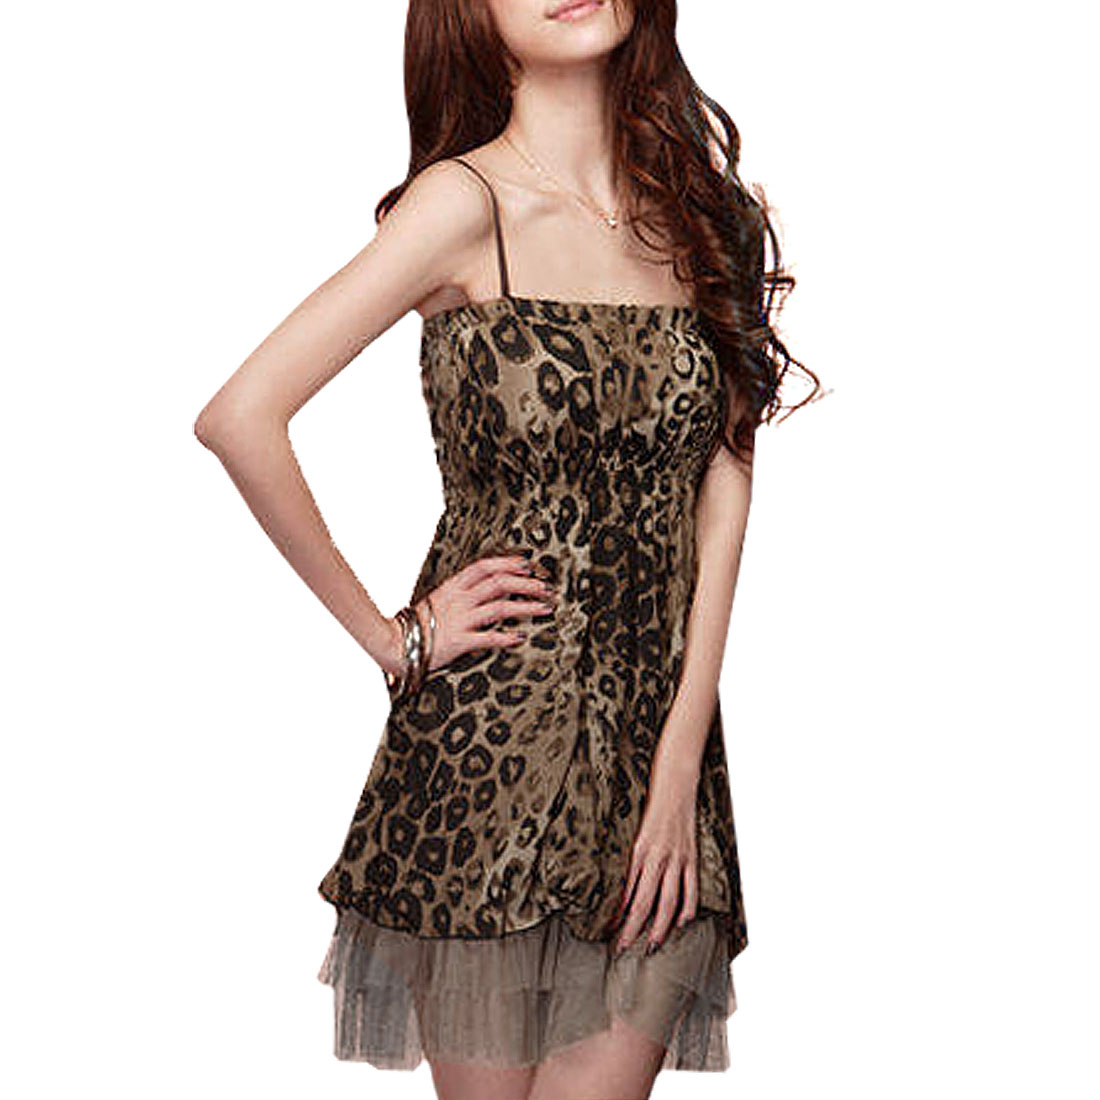 Sleeveless Sheath Waist Mini Spaghetti Dress Brown Black XS for Ladies